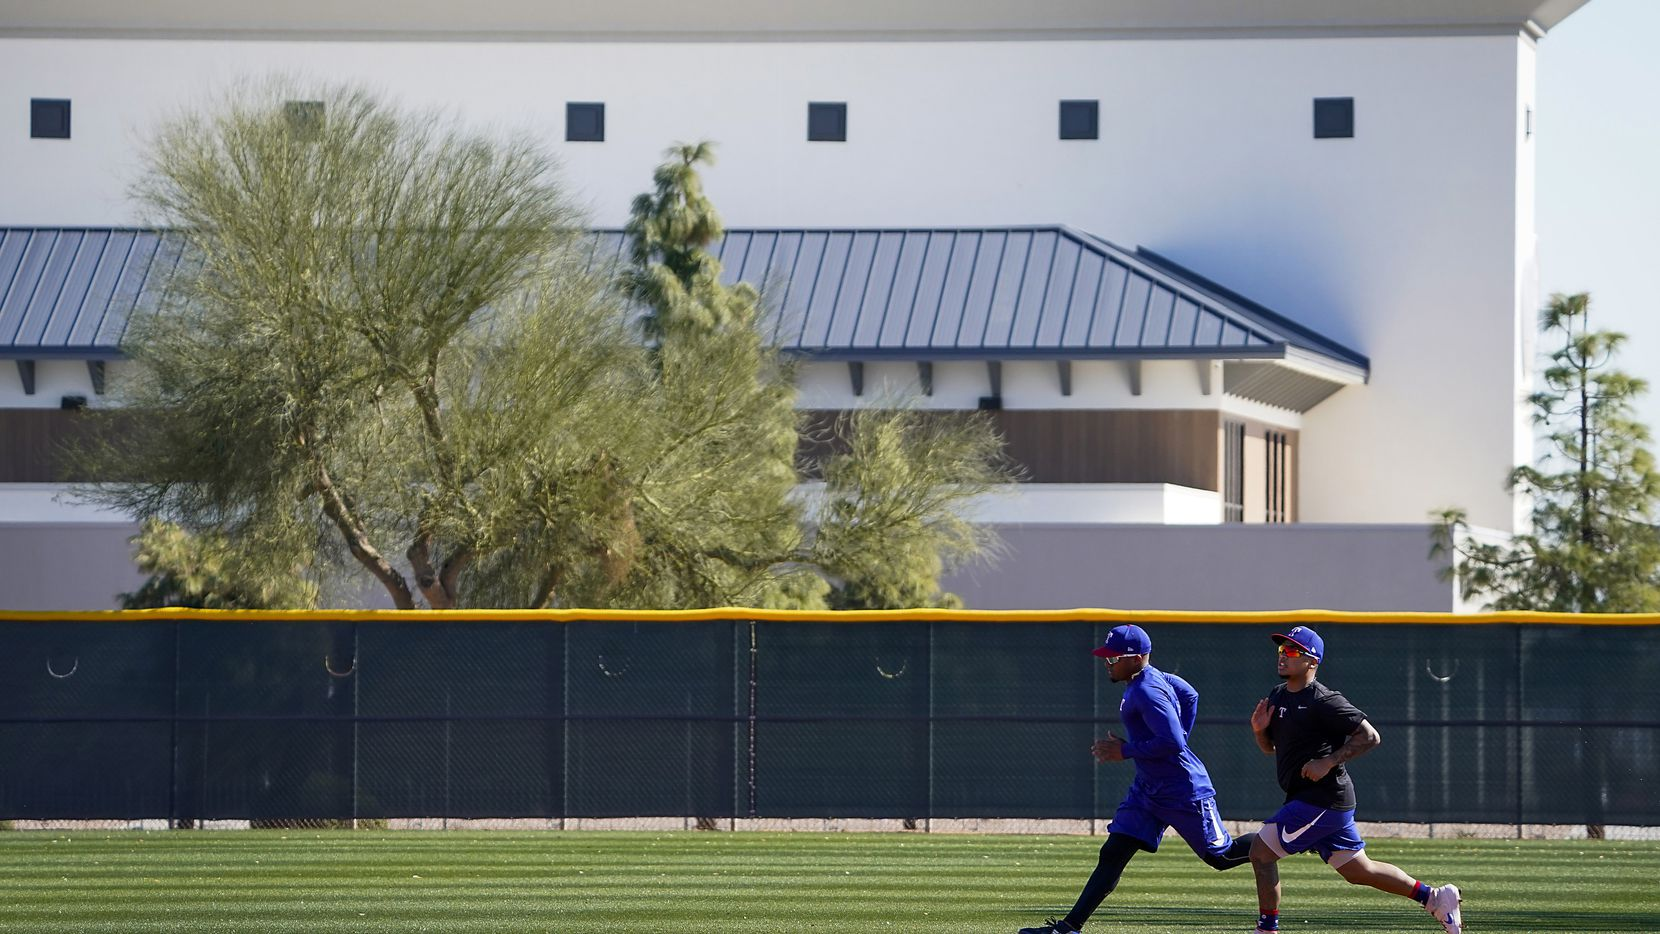 FILE - The new Rangers Village, a housing complex and performance center for minor league players, is pictured in the background as outfielder Willie Calhoun (right) and infielder Andy Ibanez run on a practice field on Thursday, Feb. 13, 2020, in Surprise, Ariz.